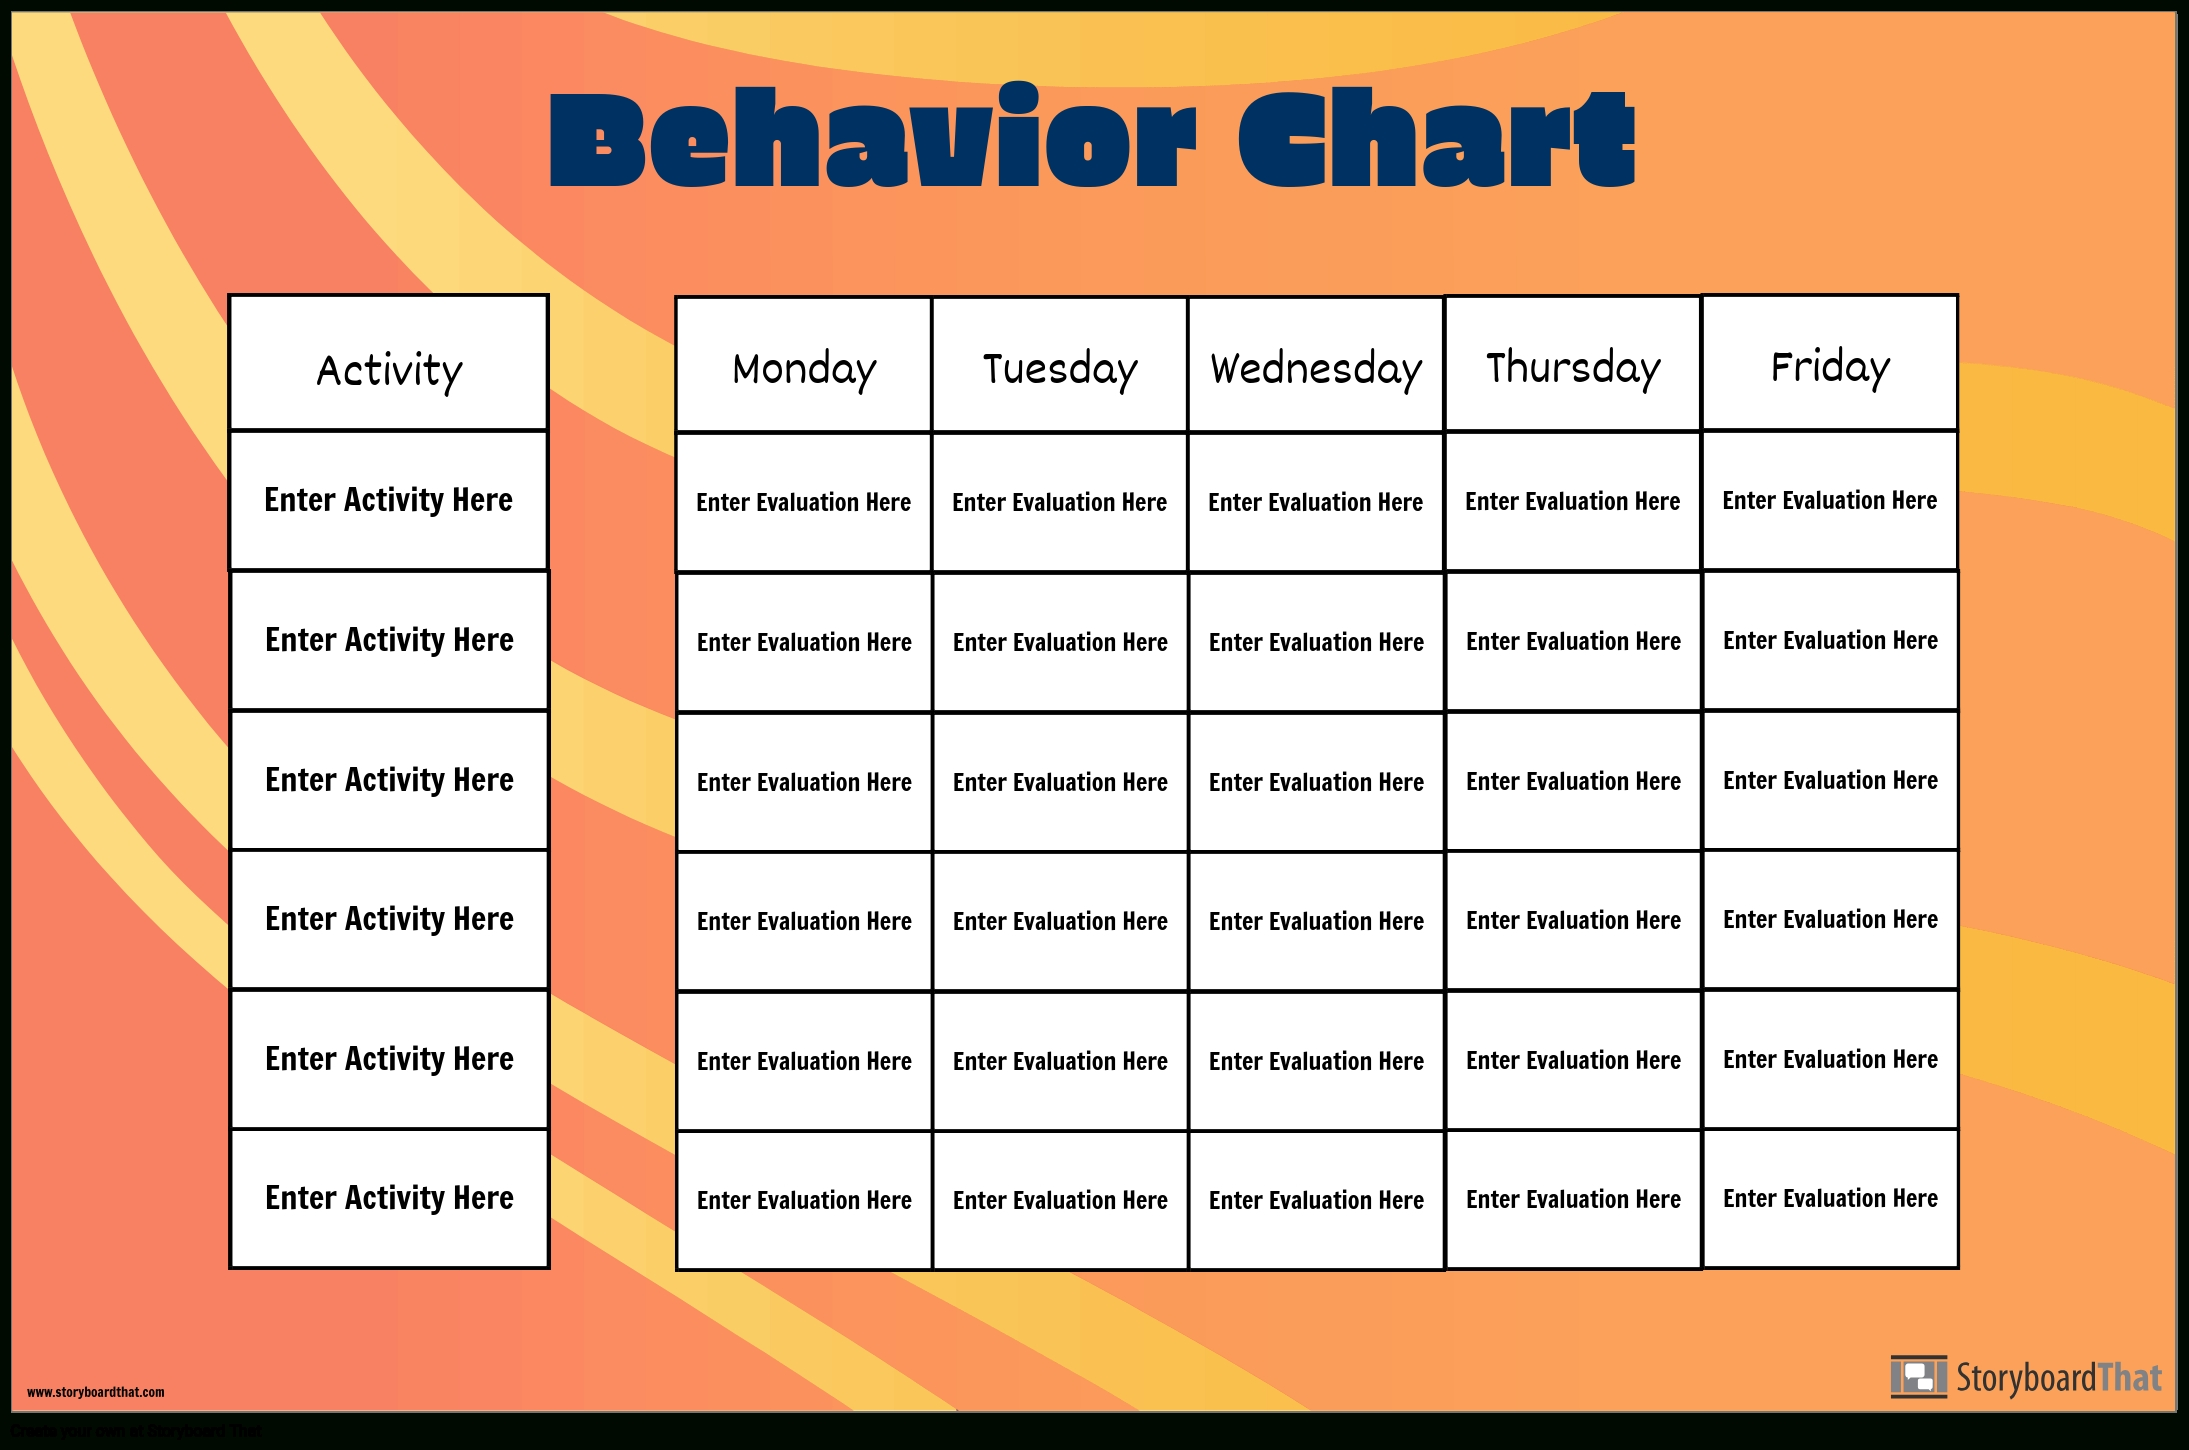 Grid Behavior Chart Storyboard By Poster-Templates